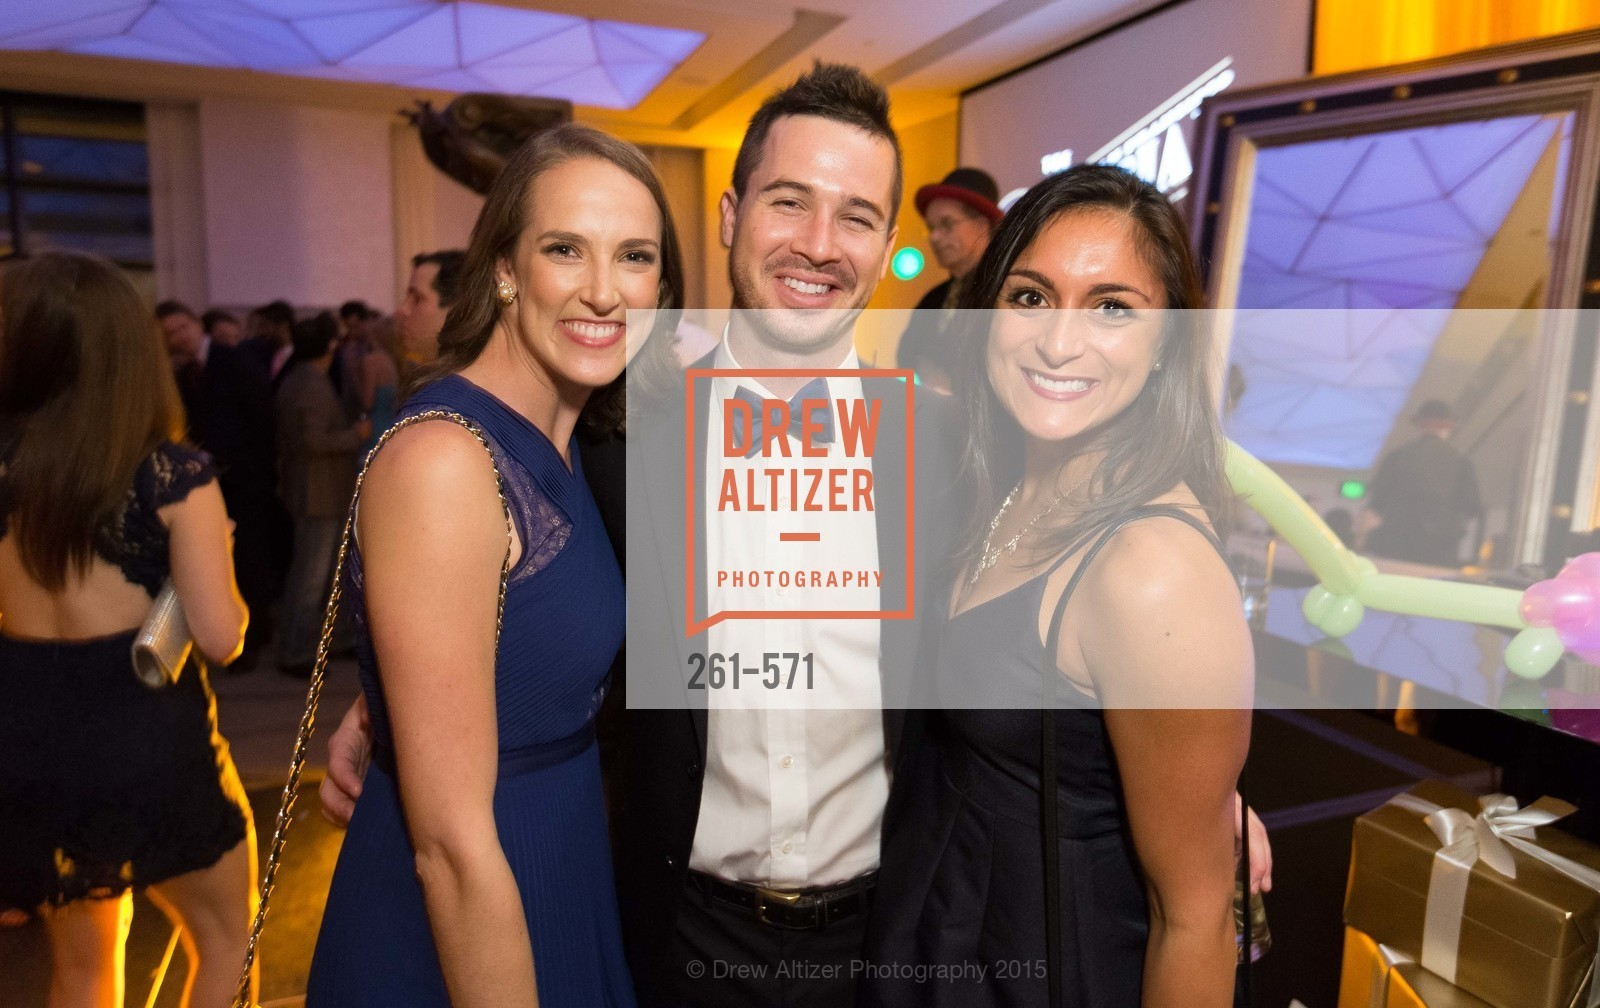 Bryn McMullan, Matt Dresser, Rachel Ortega, The 10th Annual San Francisco Social, W Hotel. 181 3rd St, November 21st, 2015,Drew Altizer, Drew Altizer Photography, full-service agency, private events, San Francisco photographer, photographer california